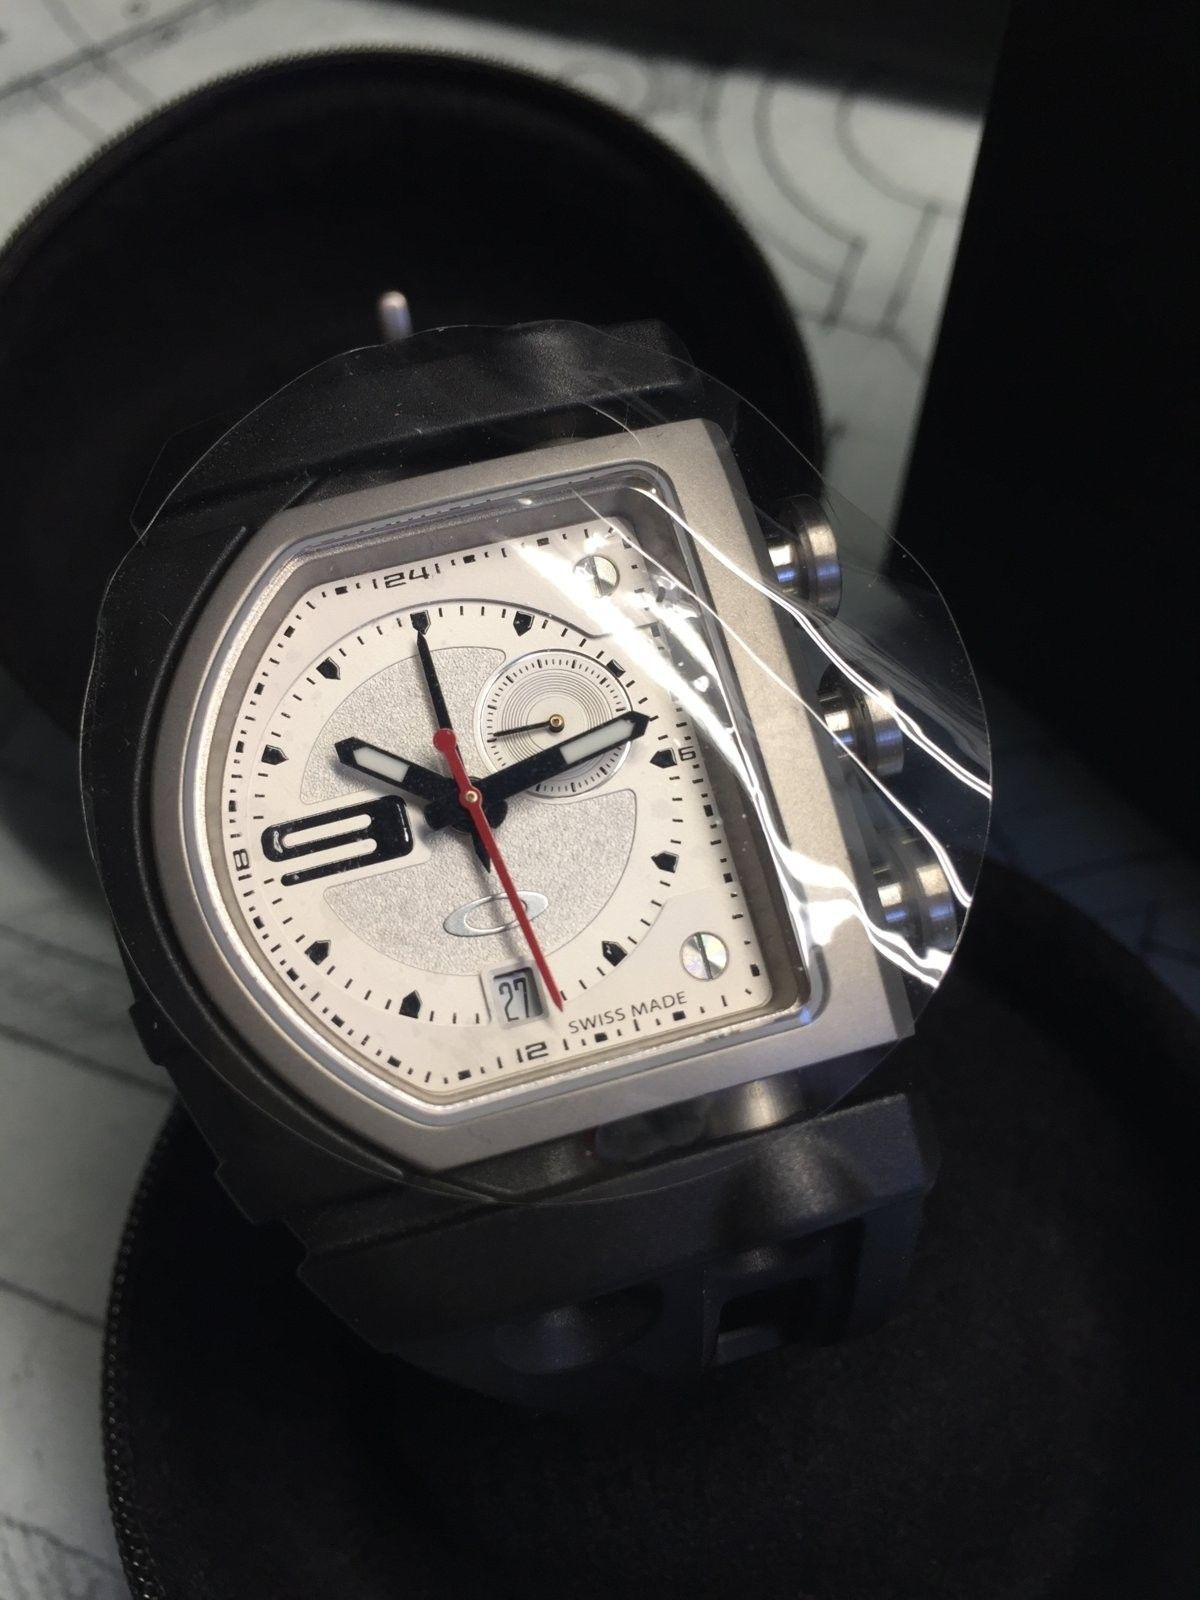 BNIB White dial Fuse Box watch $225 shipped - IMG_2425.JPG